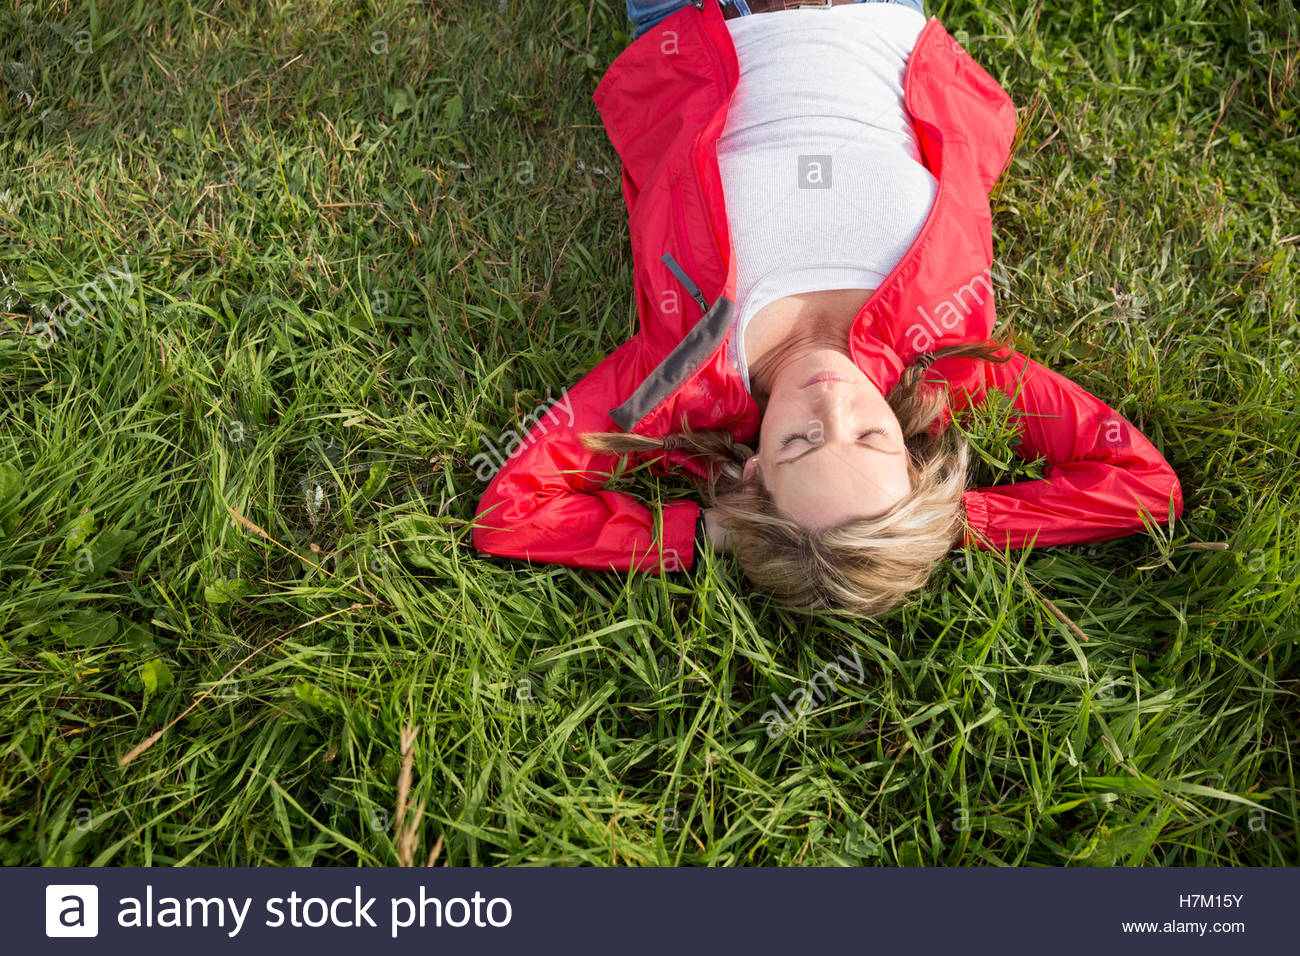 Serene woman relaxing with hands behind head in grass Photo Stock